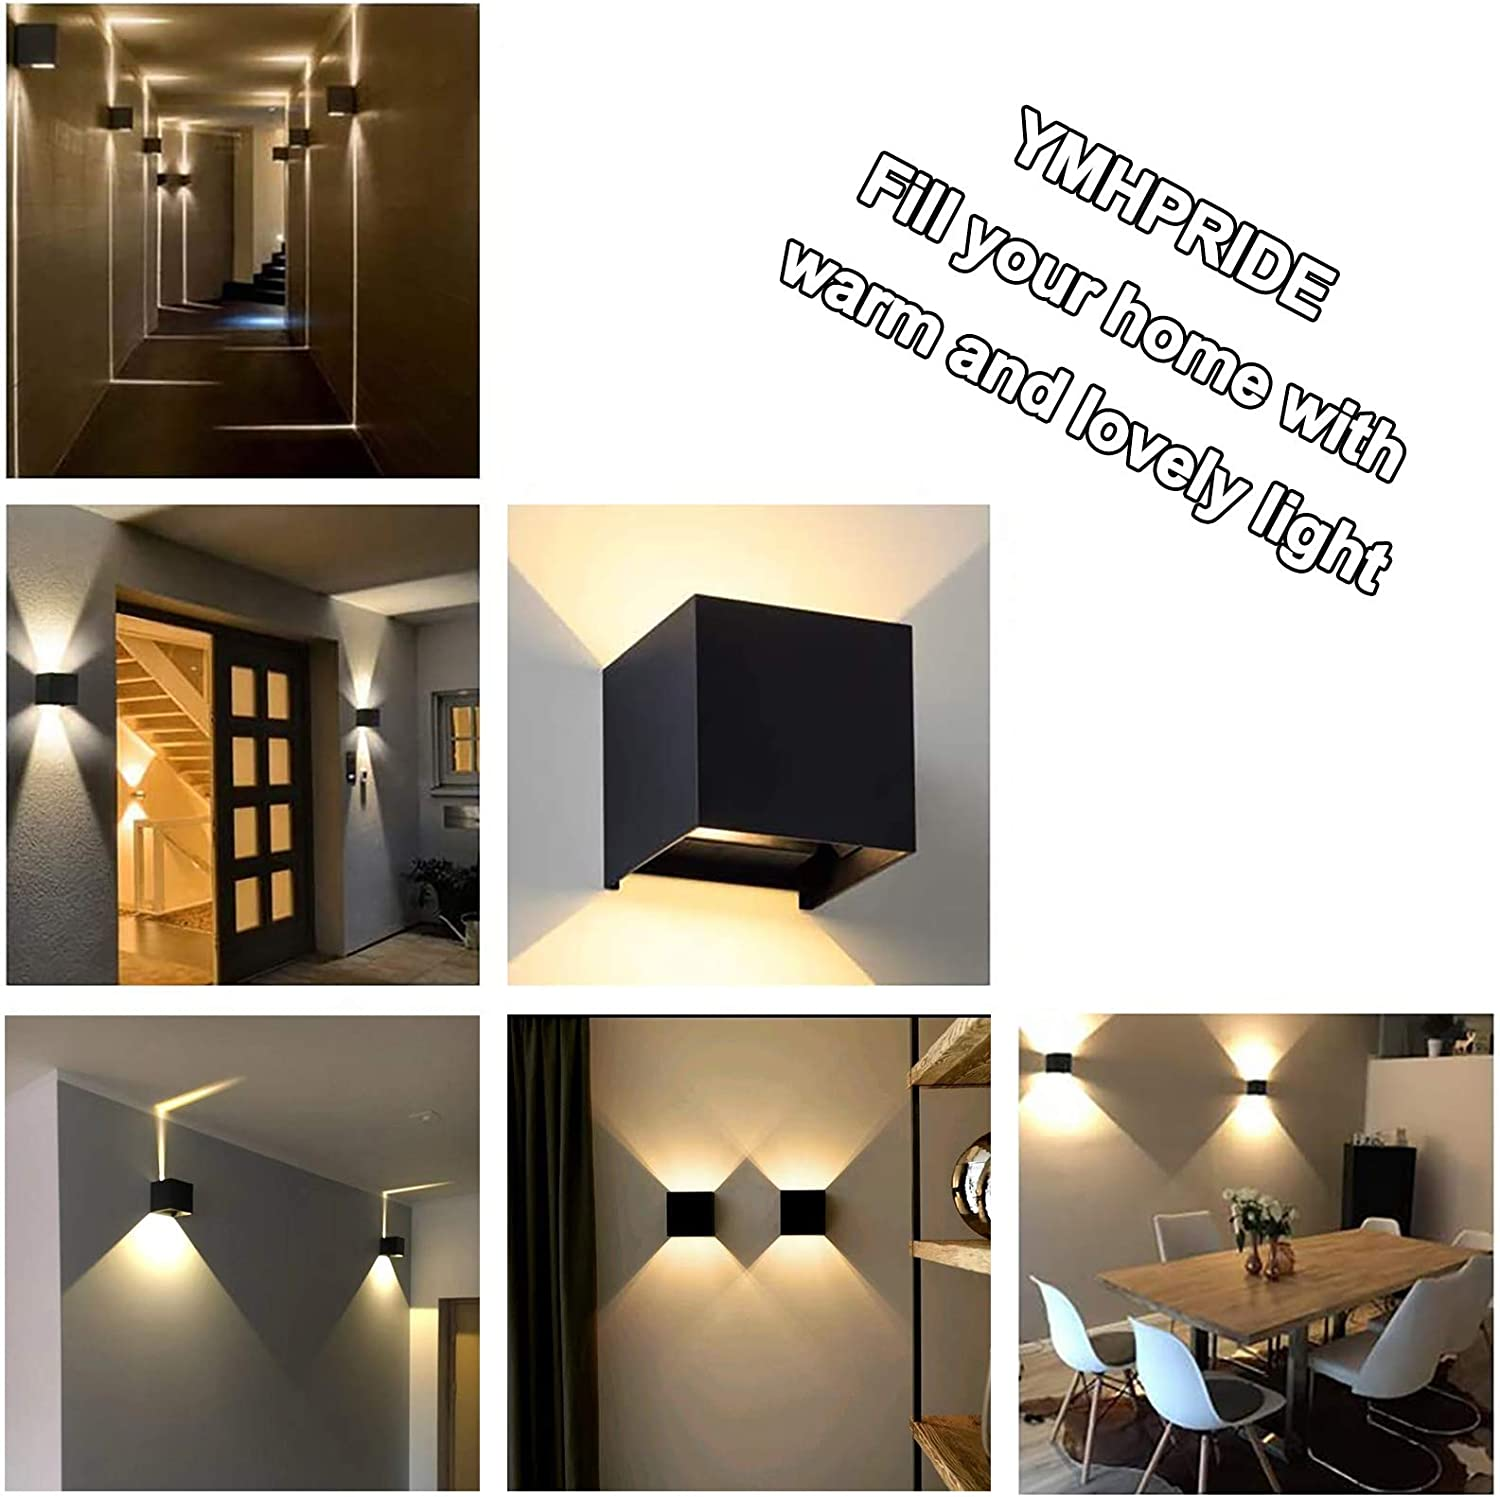 Adjustable Light Angle Up and Down Wall Lamp for Living Room Bedroom and Garden YMHPRIDE 2 Pcs Adjustable LED Wall Sconce Lights Lamps 7W Modern Wall Wash Lighting 3000K IP65 Energy Class A+